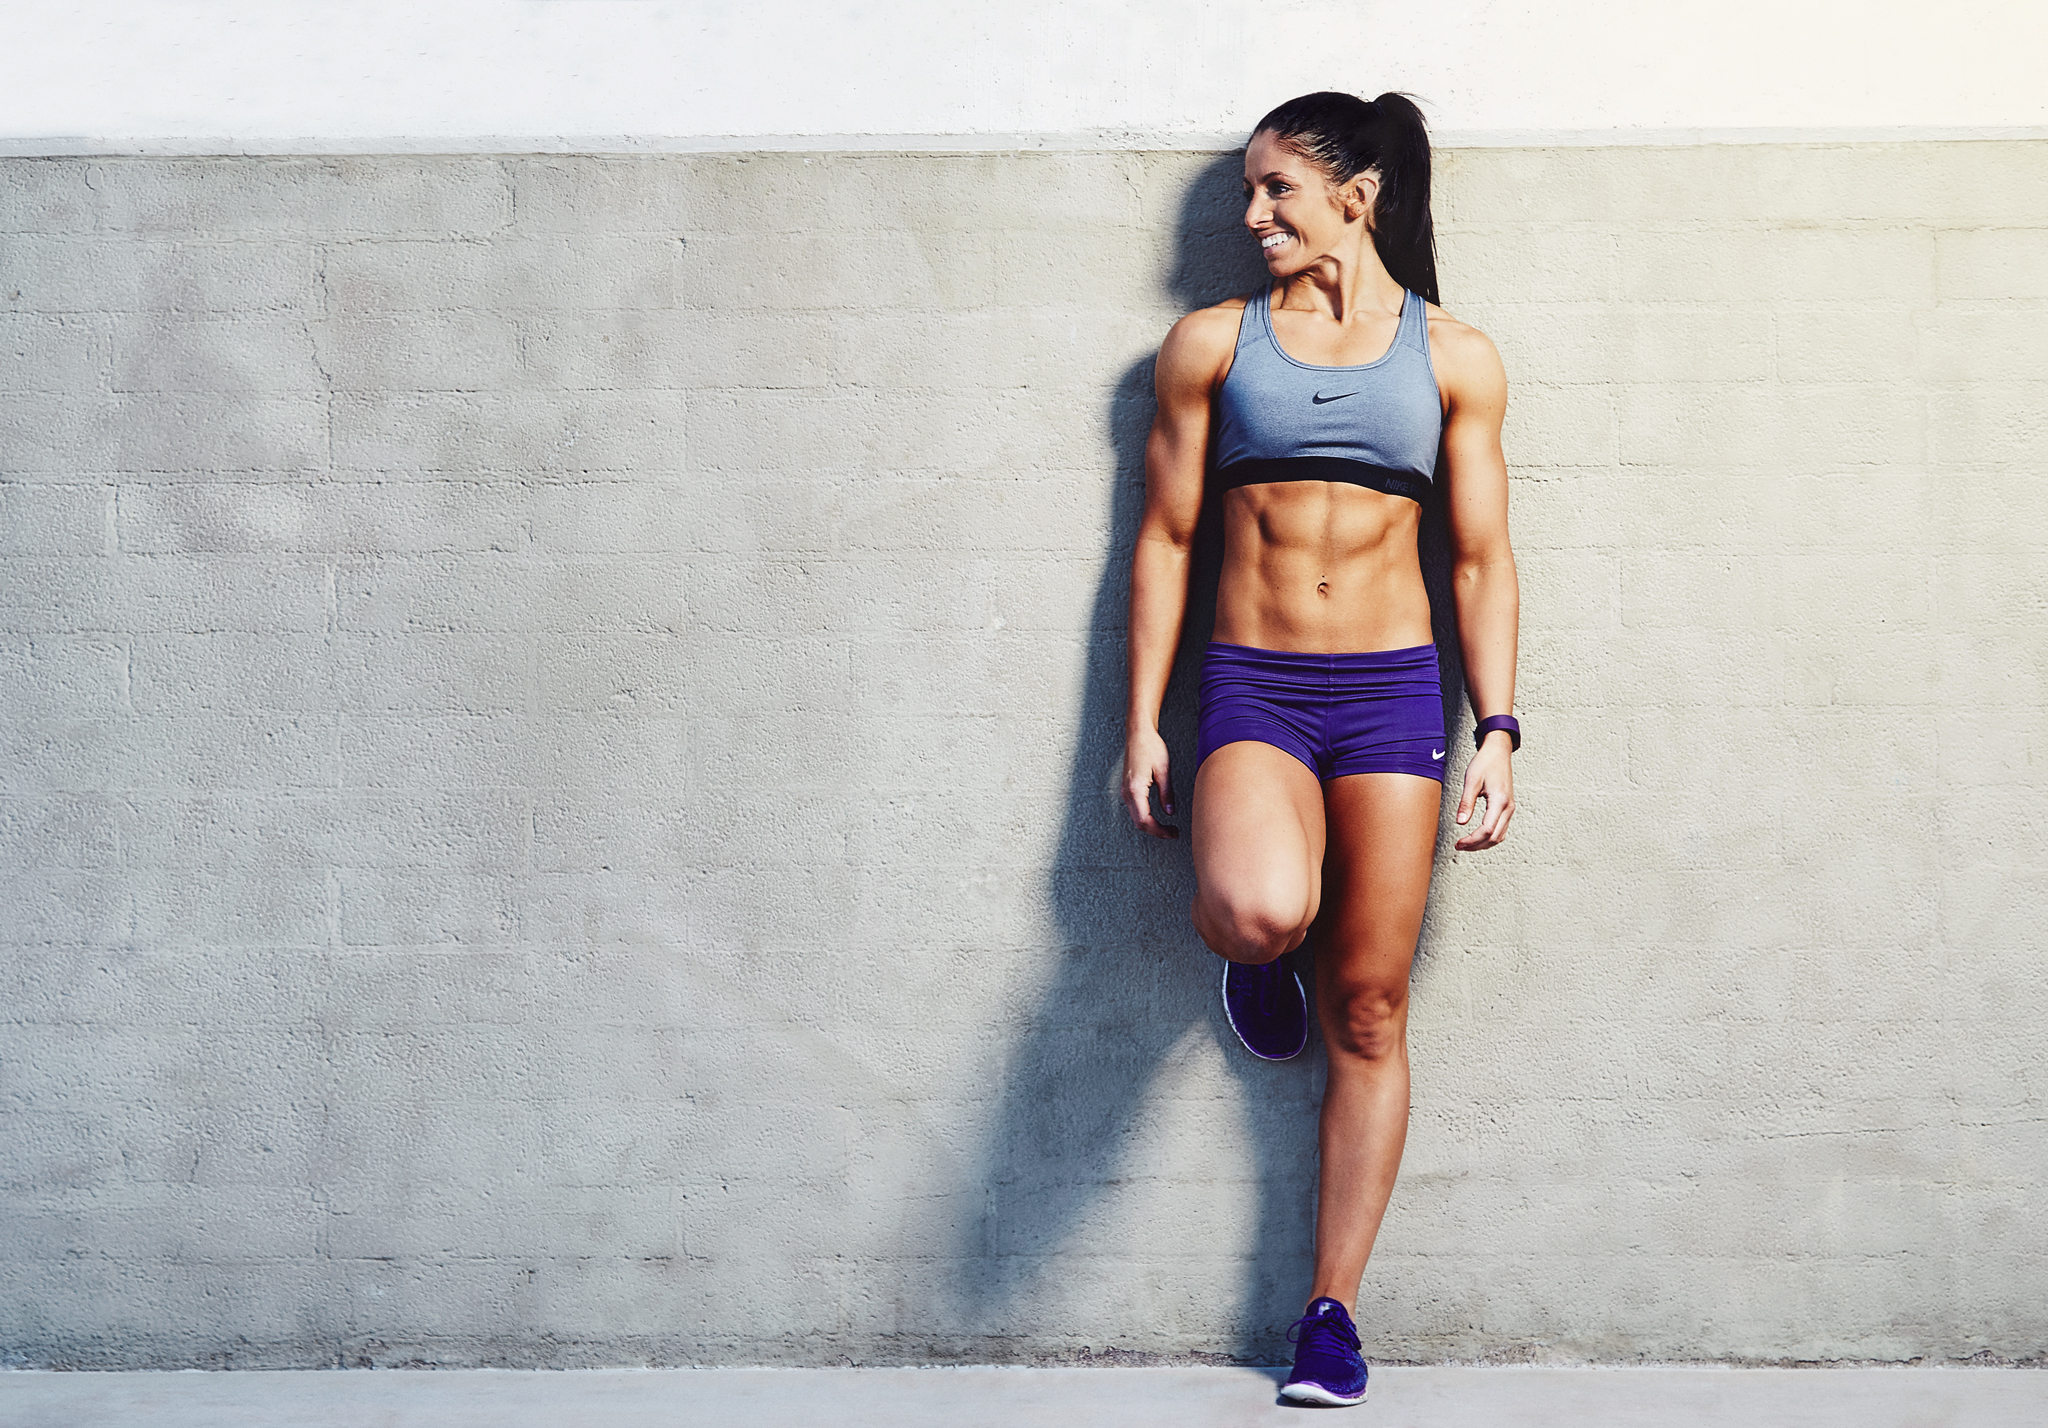 Nike Fitness Model - April Bleicher